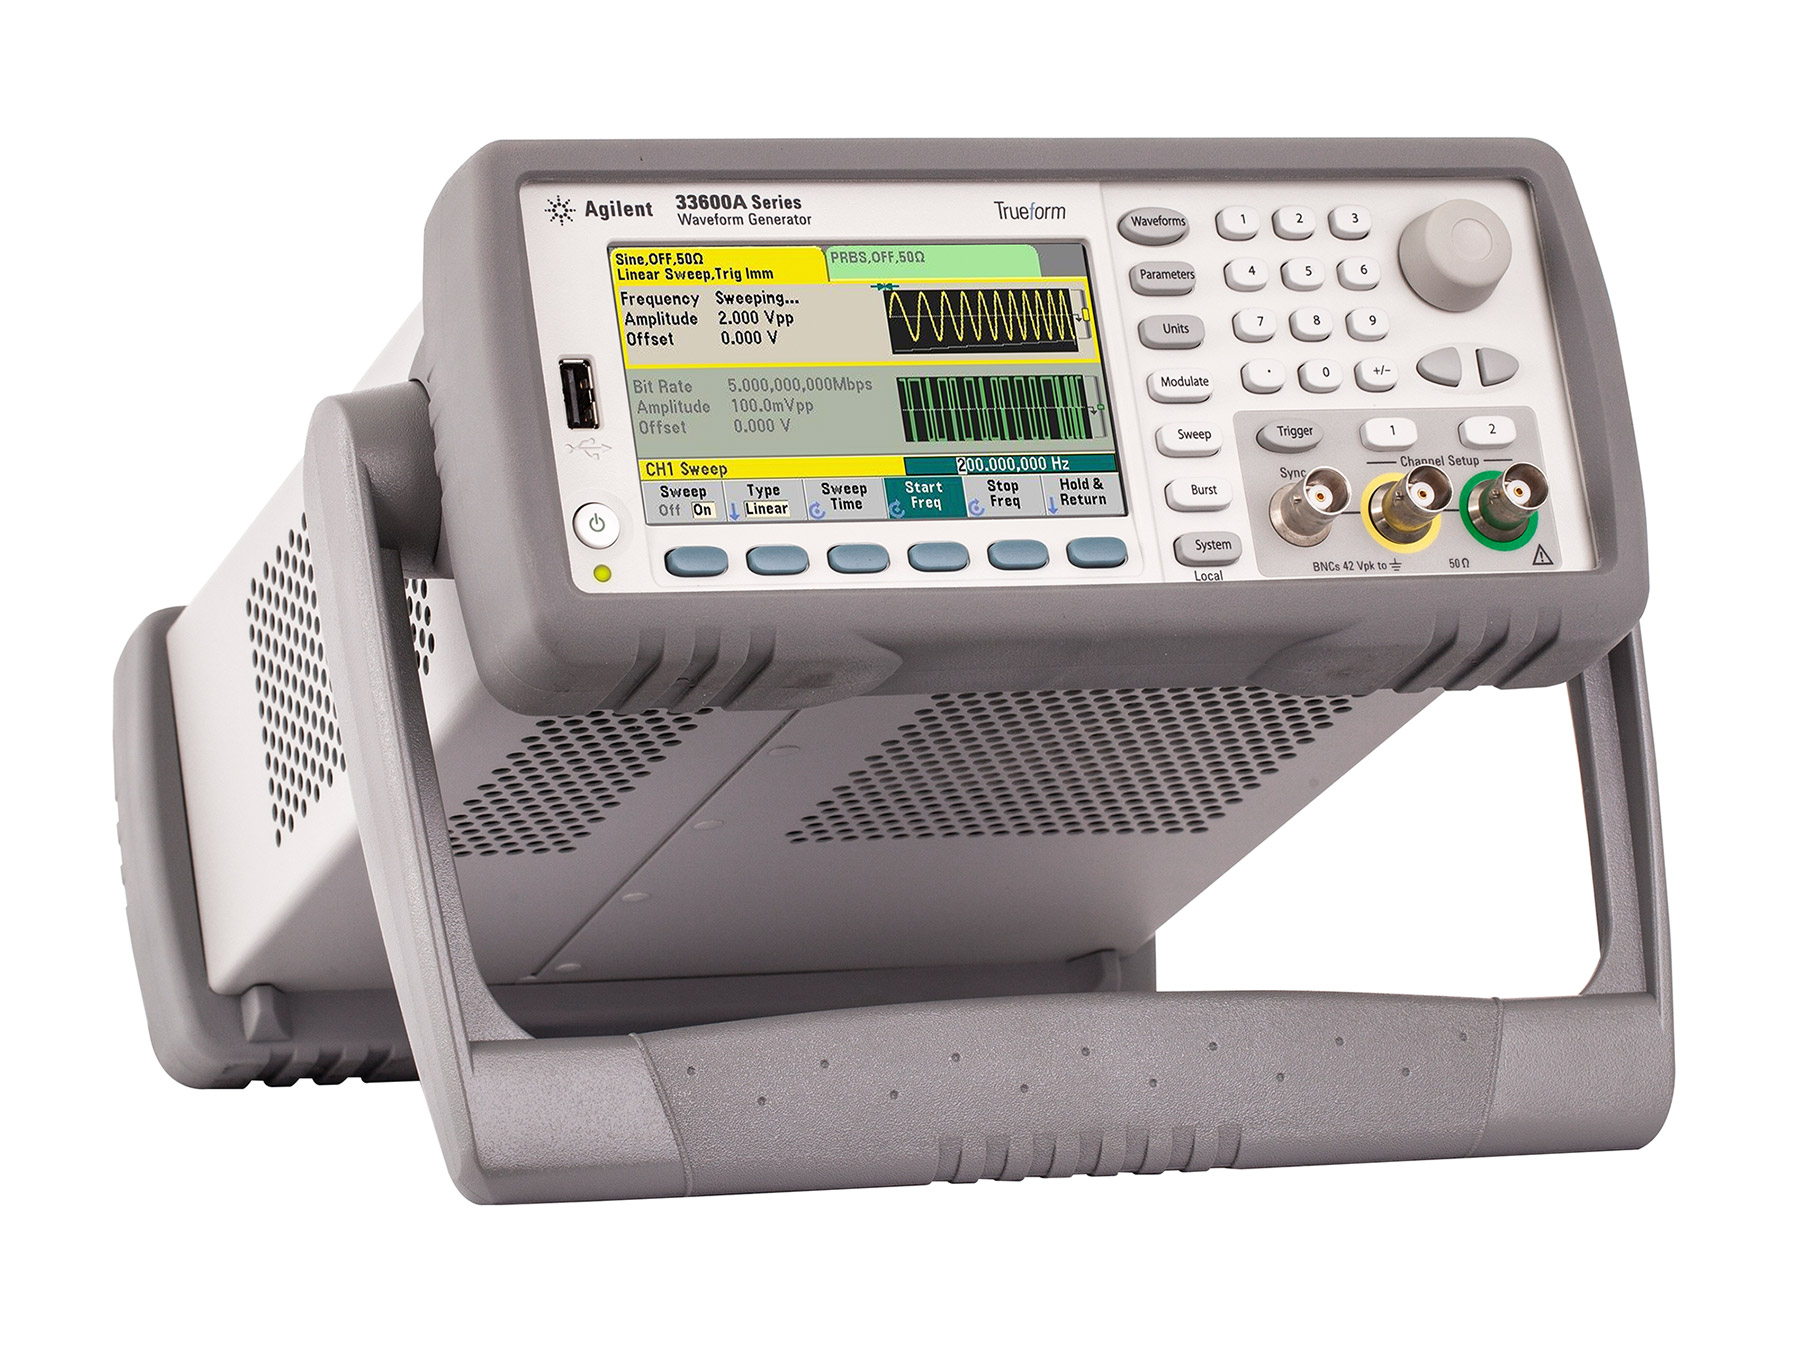 33600A Series Trueform Waveform Generators